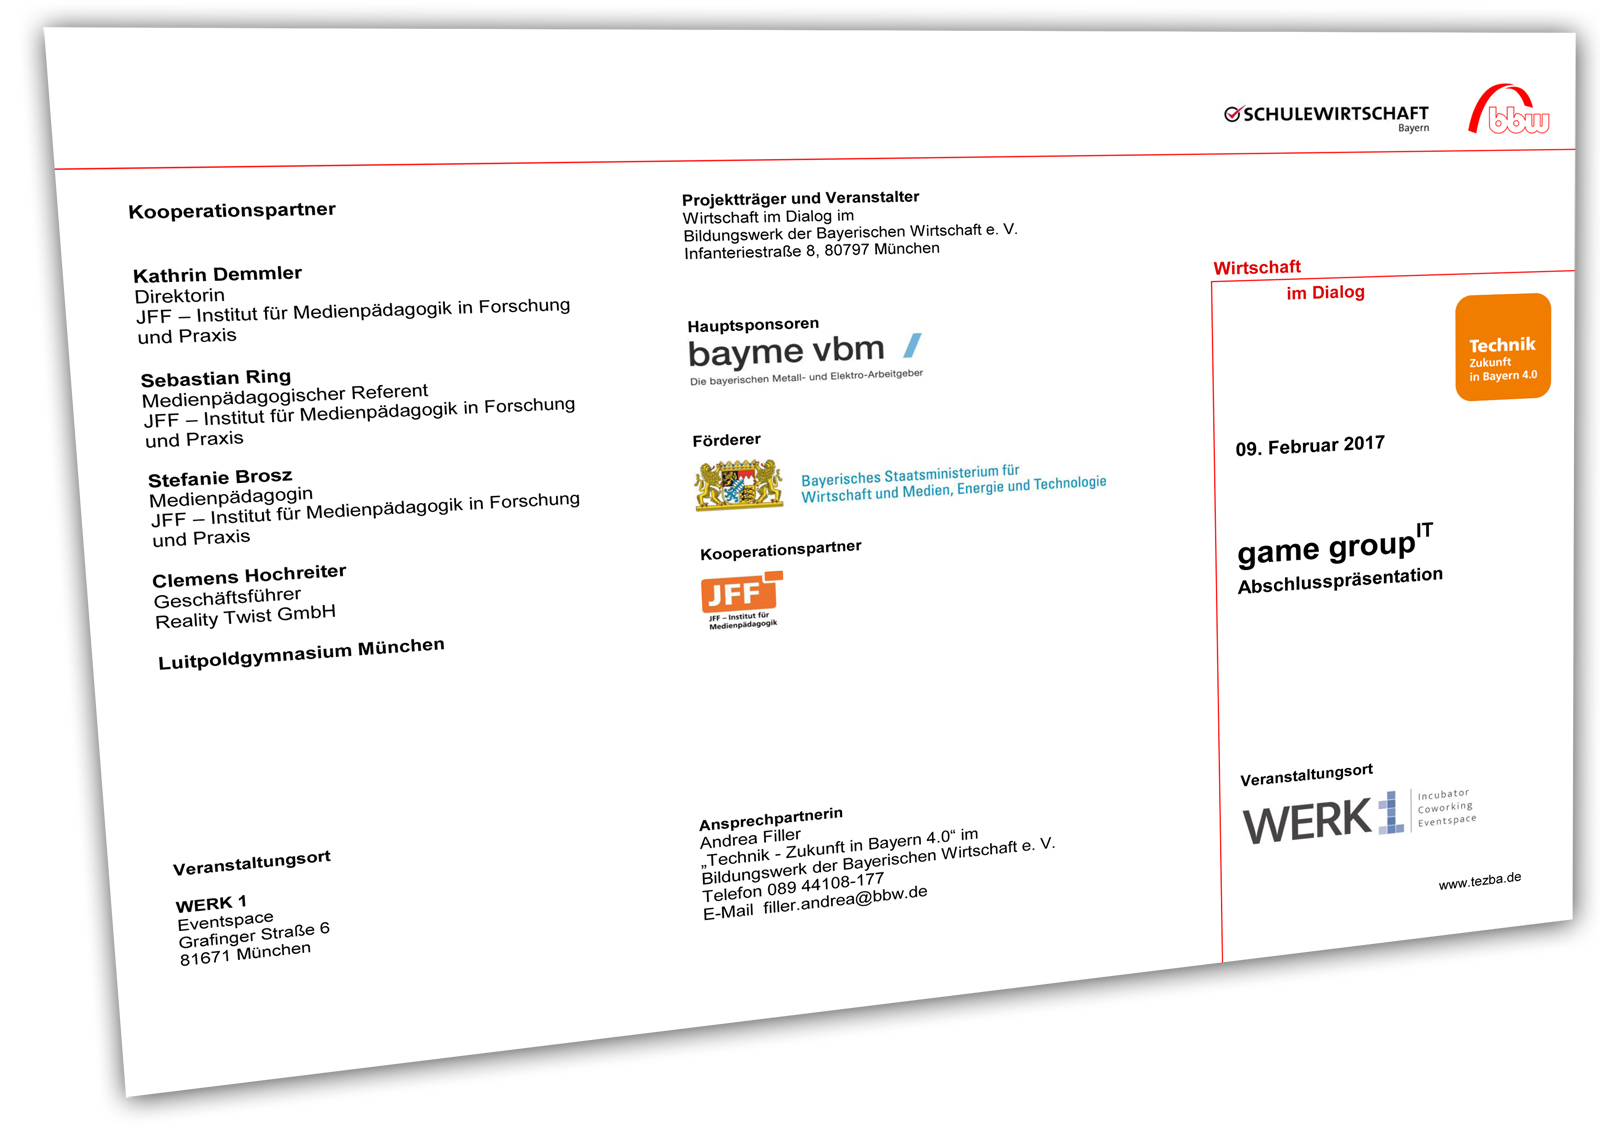 Abschluss des Gamedesign-Projekts game group IT am 9. FEB